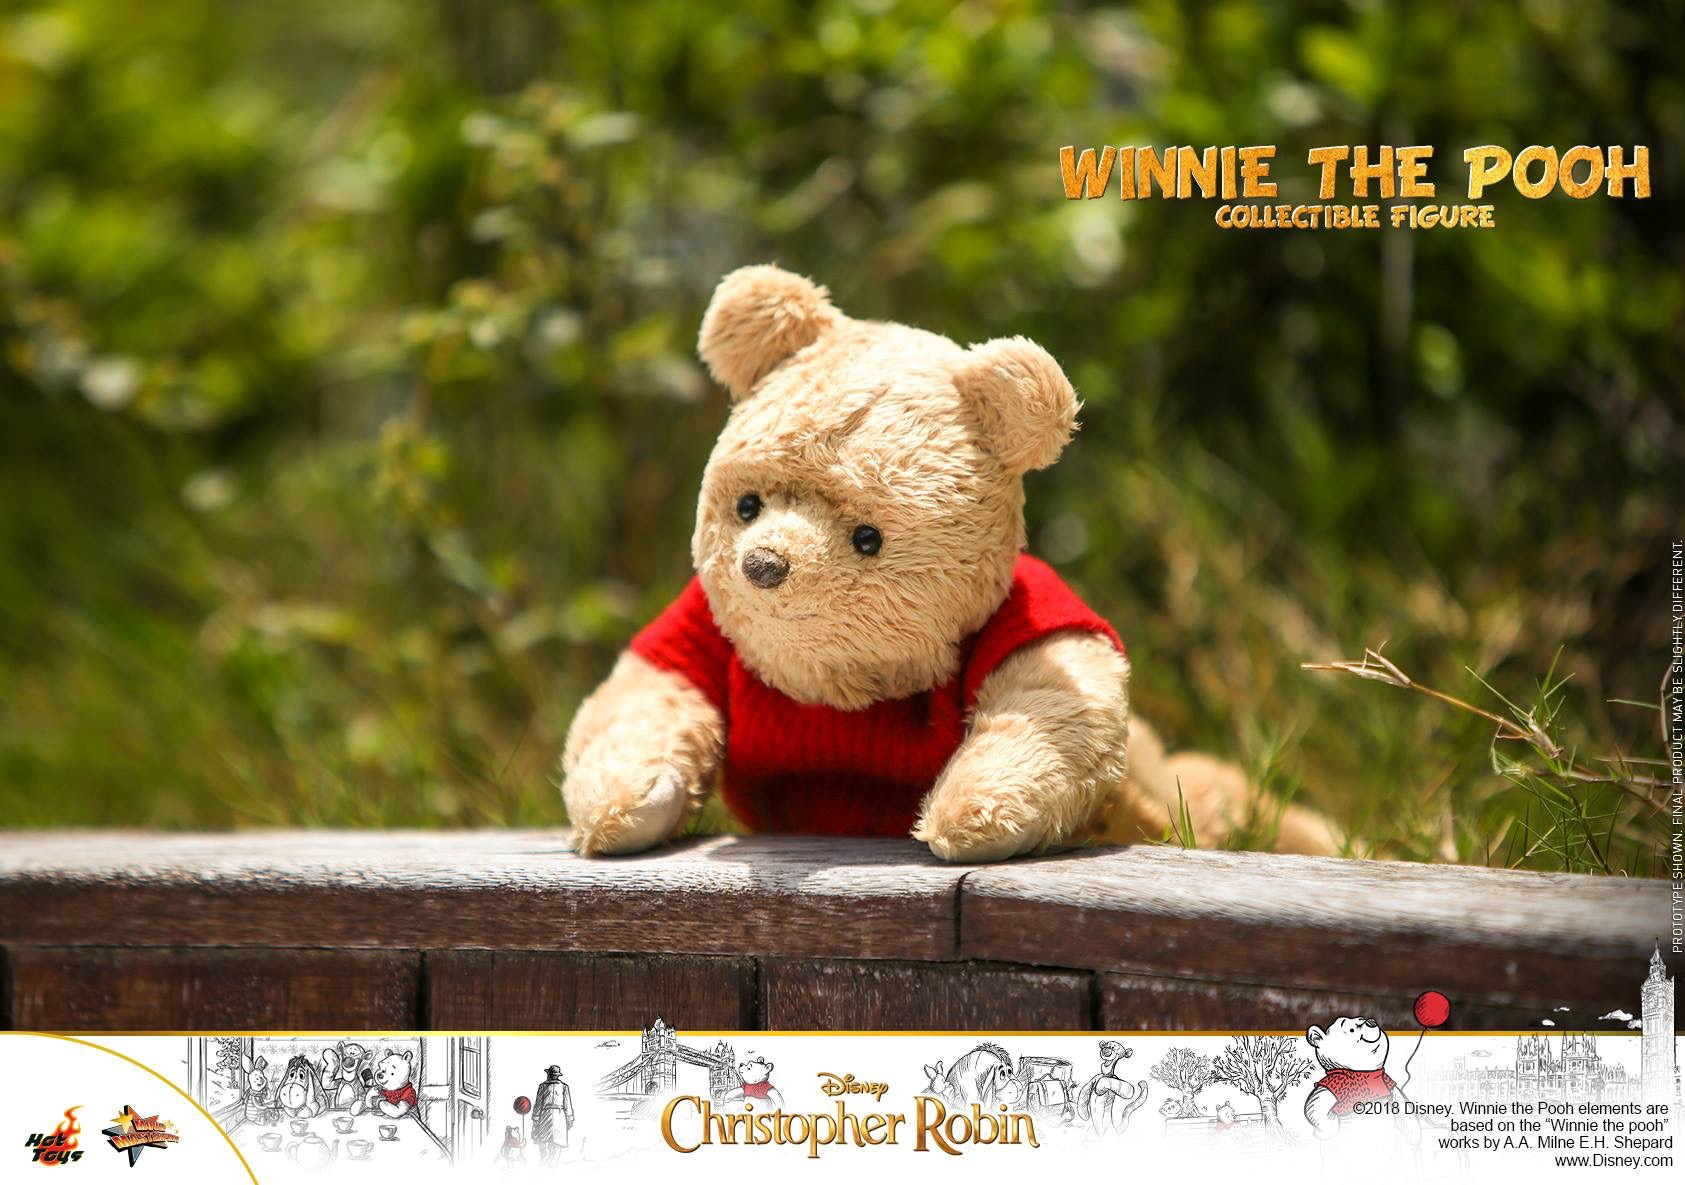 Christopher Robin Winnie The Pooh Collectible Figure